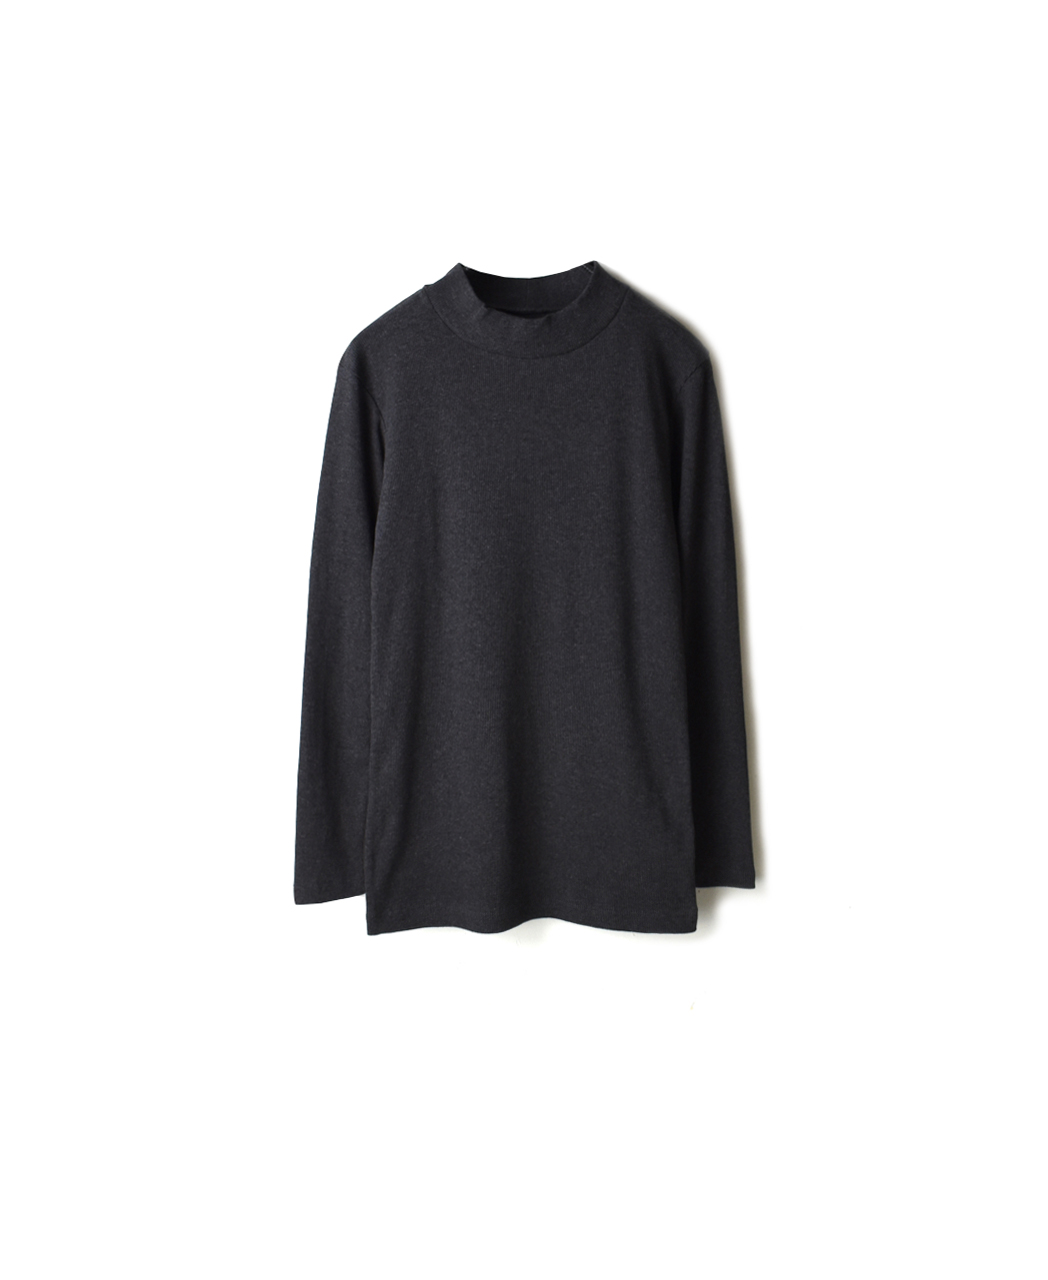 GNSL19552 40/1 TELECO TURTLE-NECK T-SHIRT